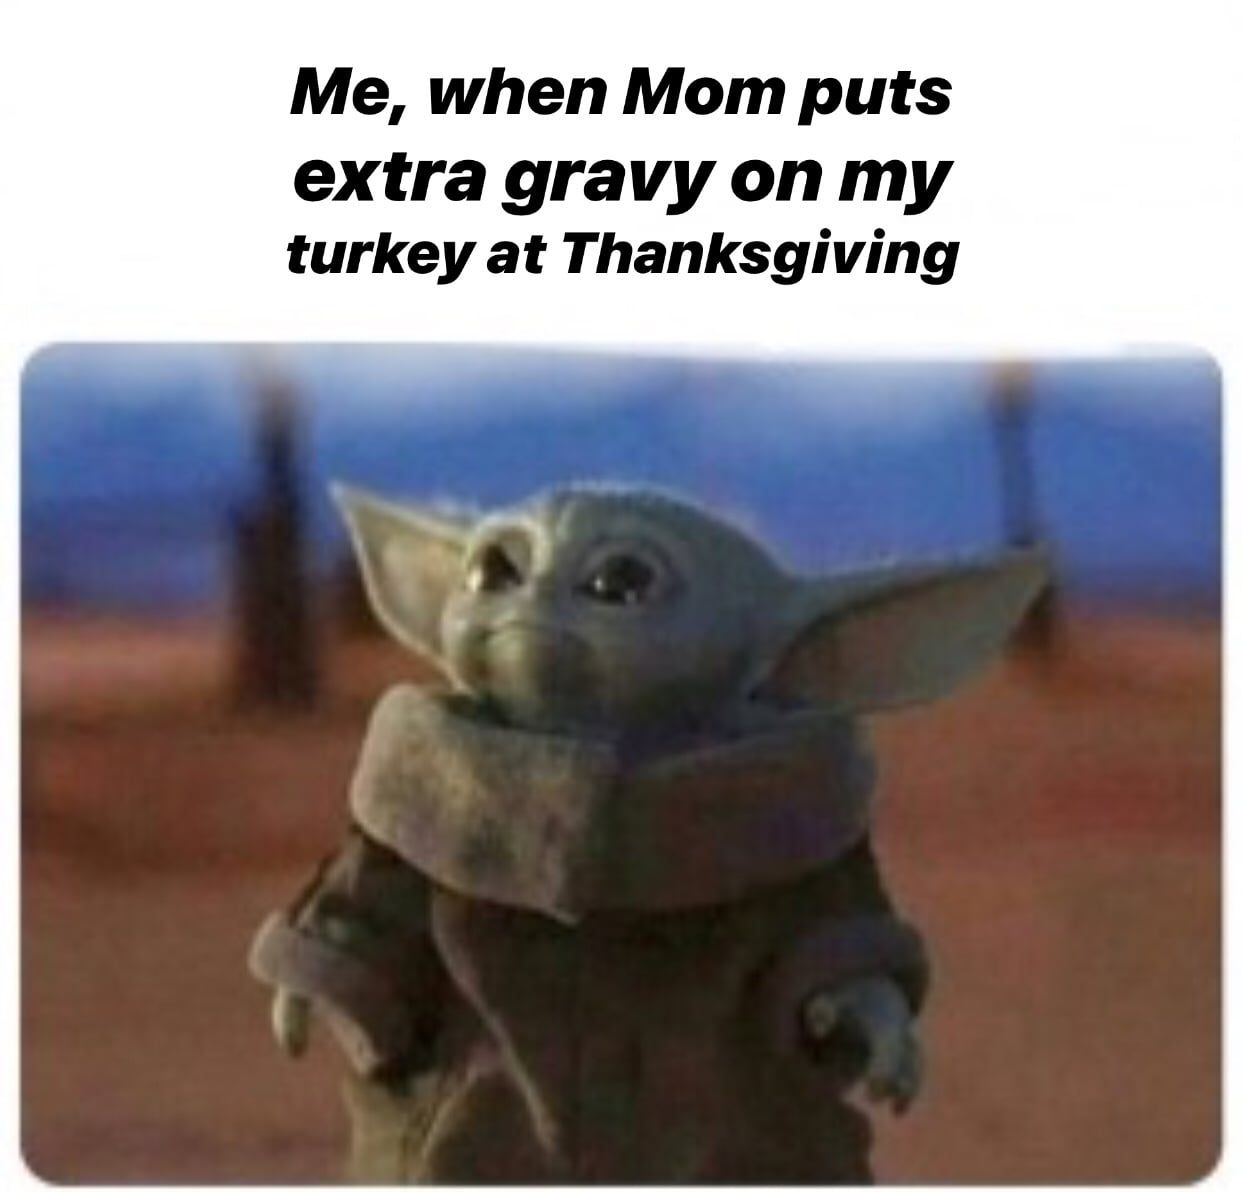 15 Thanksgiving Family Memes Because You Have To Laugh Funny Thanksgiving Memes Yoda Yoda Meme